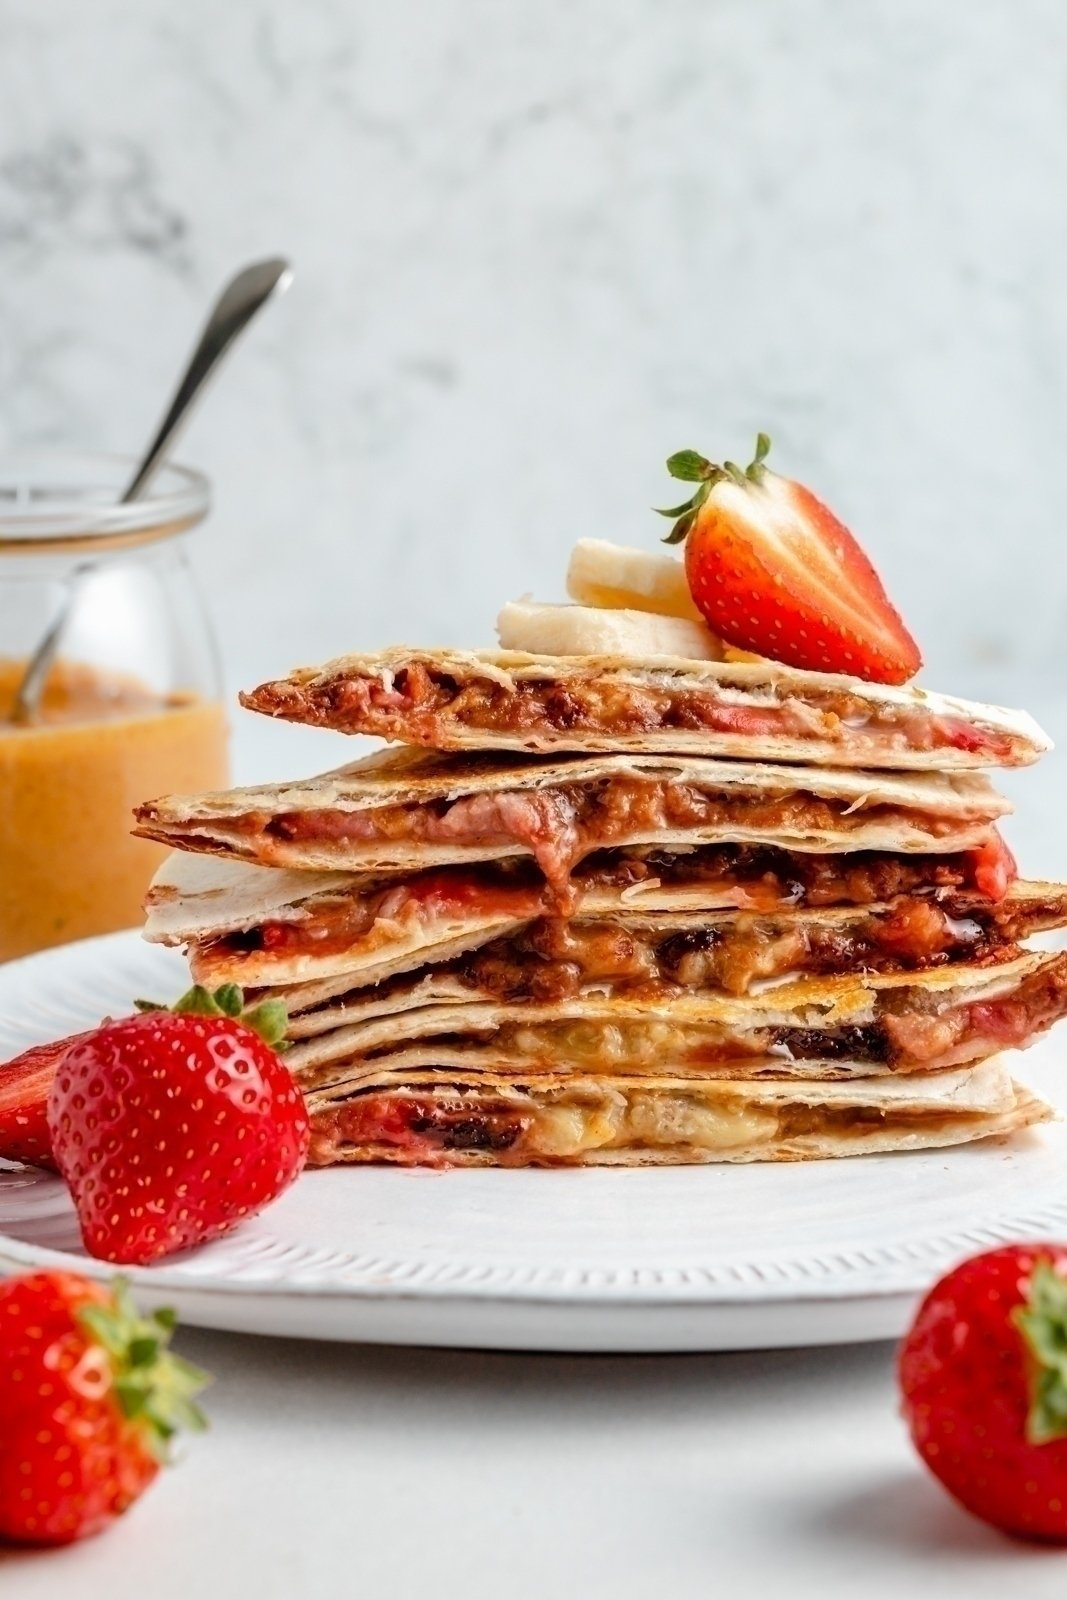 healthy peanut butter banana quesadilla with strawberries on a plate